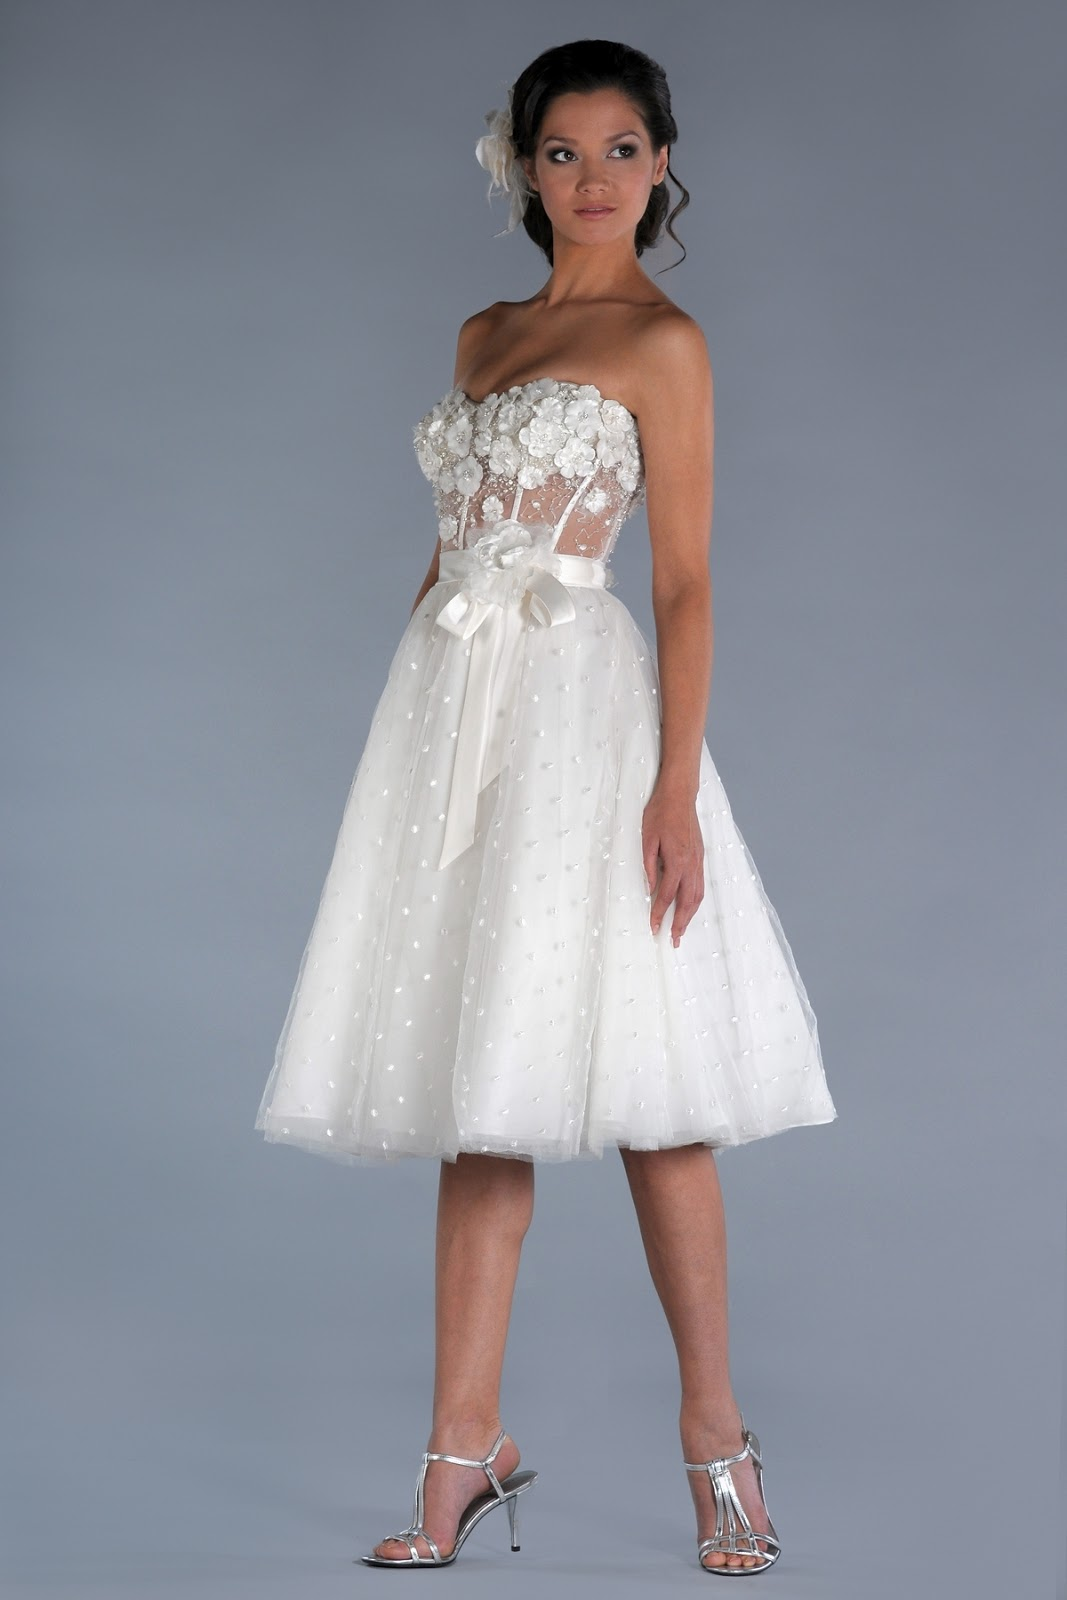 Dressybridal 5 cute short wedding dresses for summer for Good wedding dresses for short brides